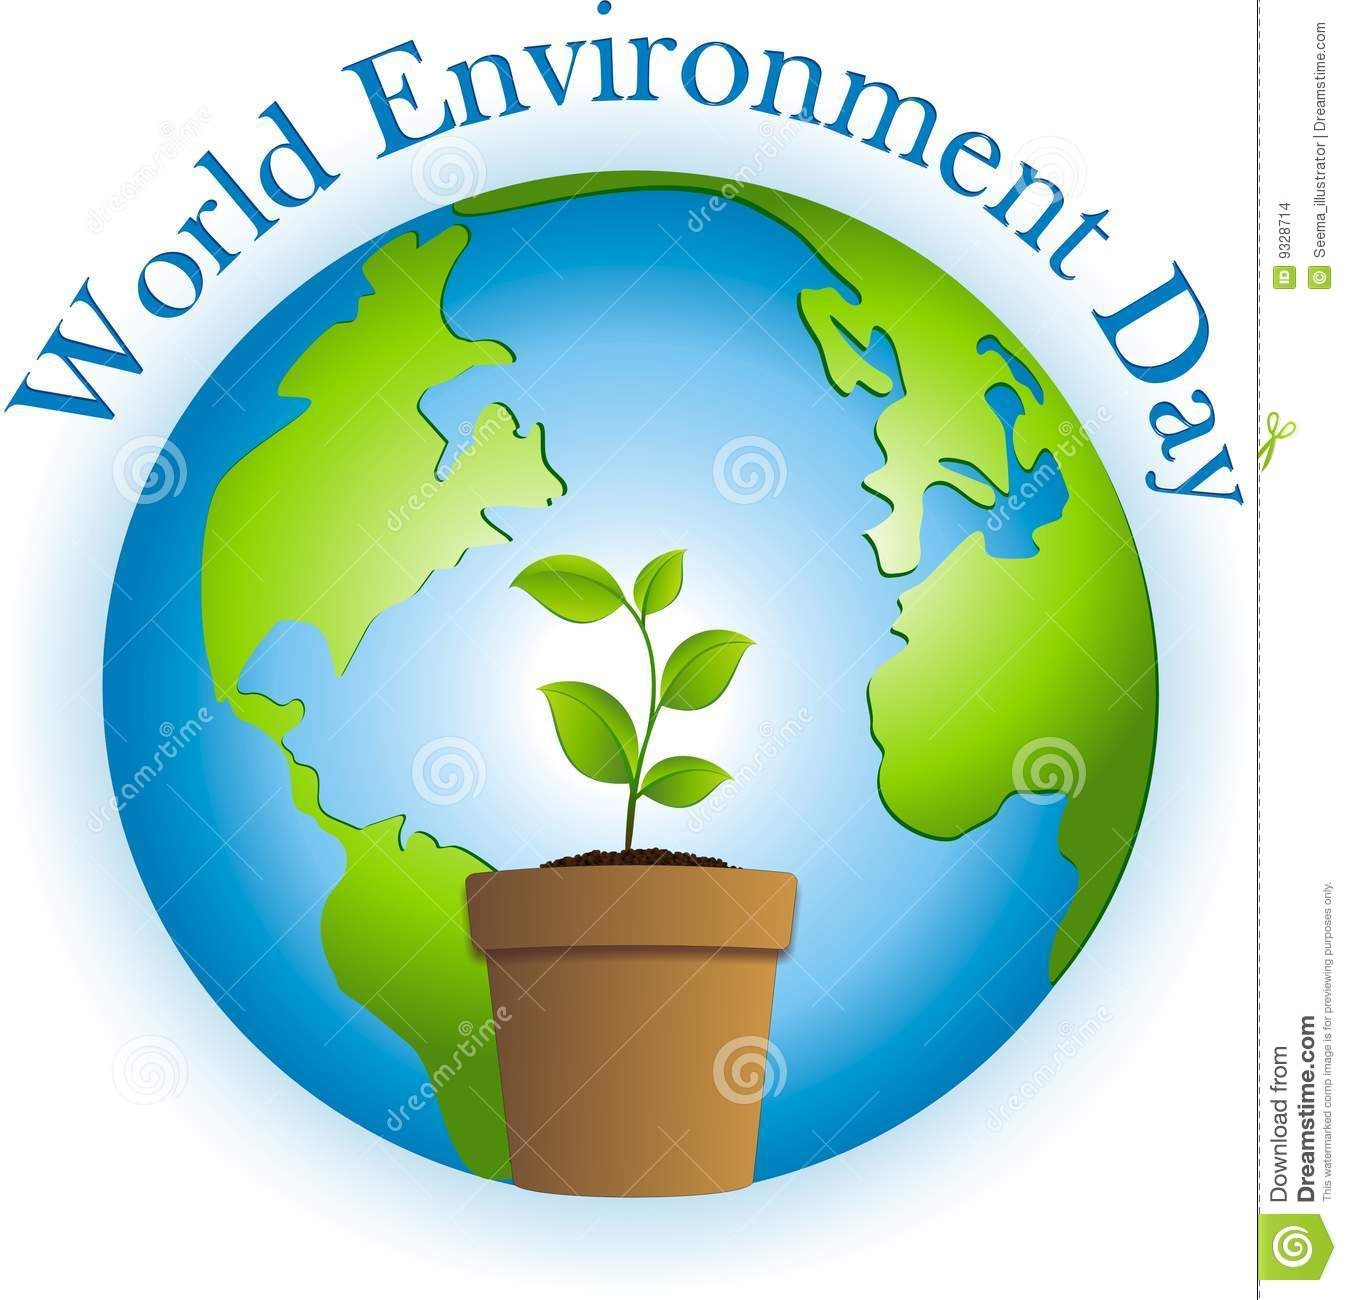 Celebrating World Environment day by planting a tree.